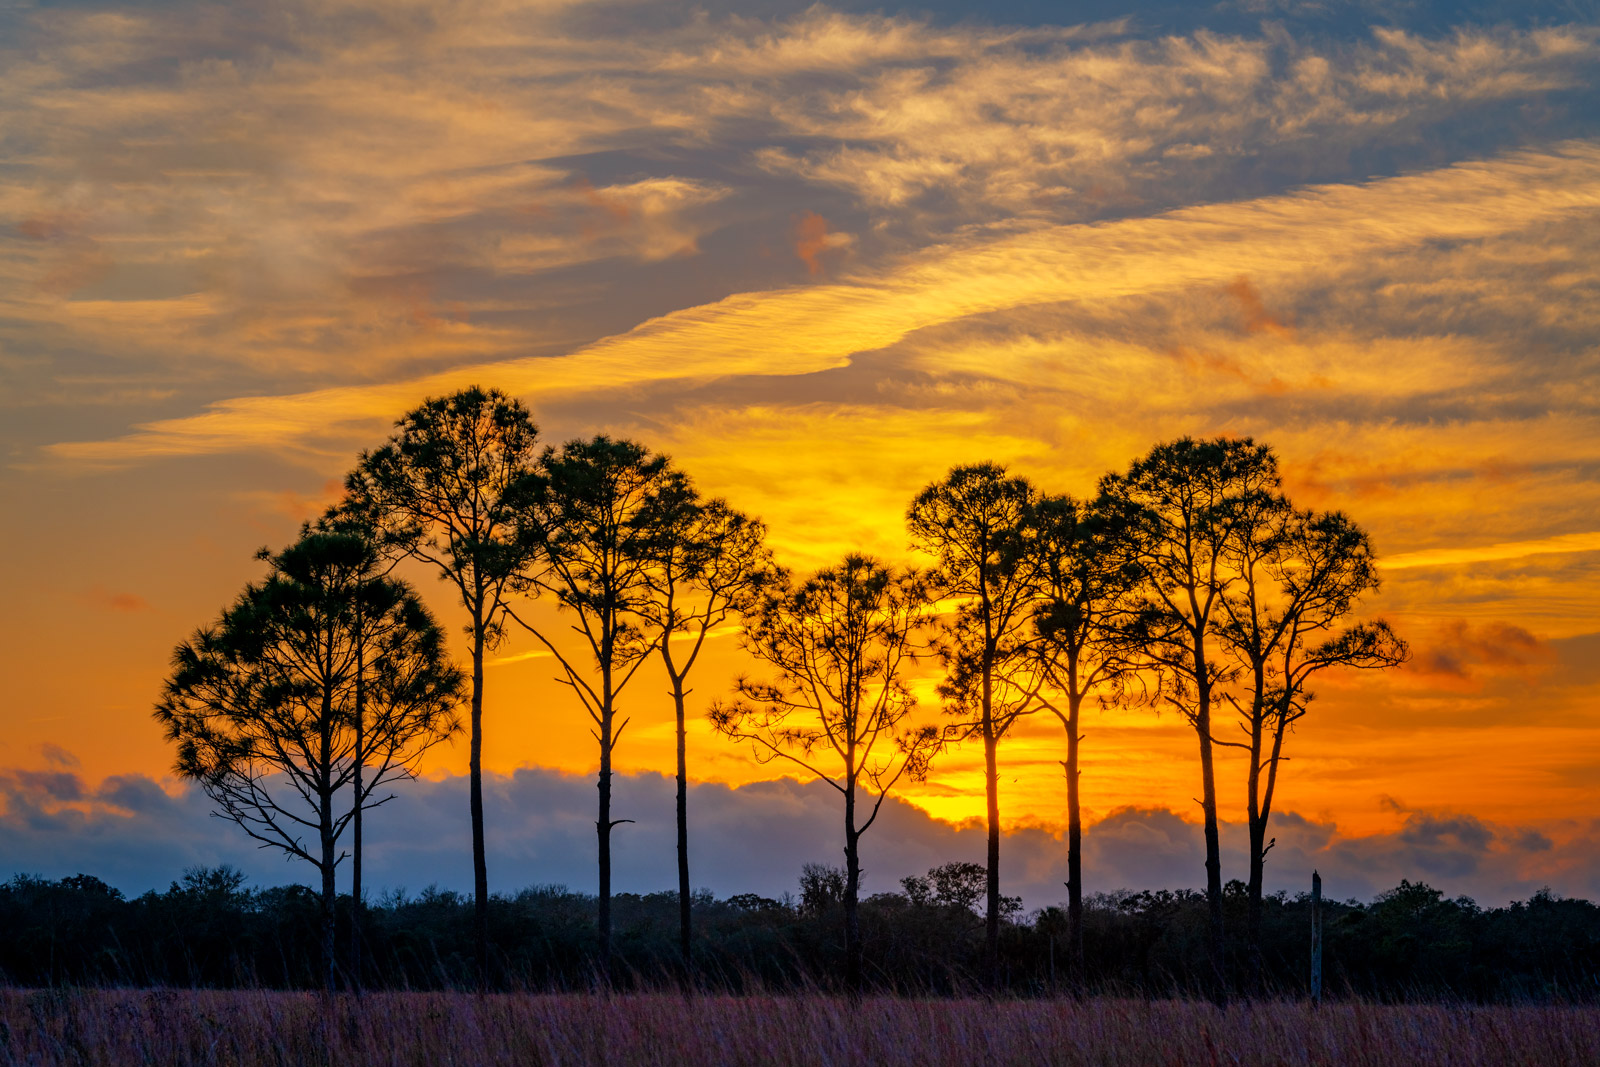 A Limited Edition, Fine Art photograph of a group of Pine Trees in front of a brilliant sunset in an open field in Southwest...